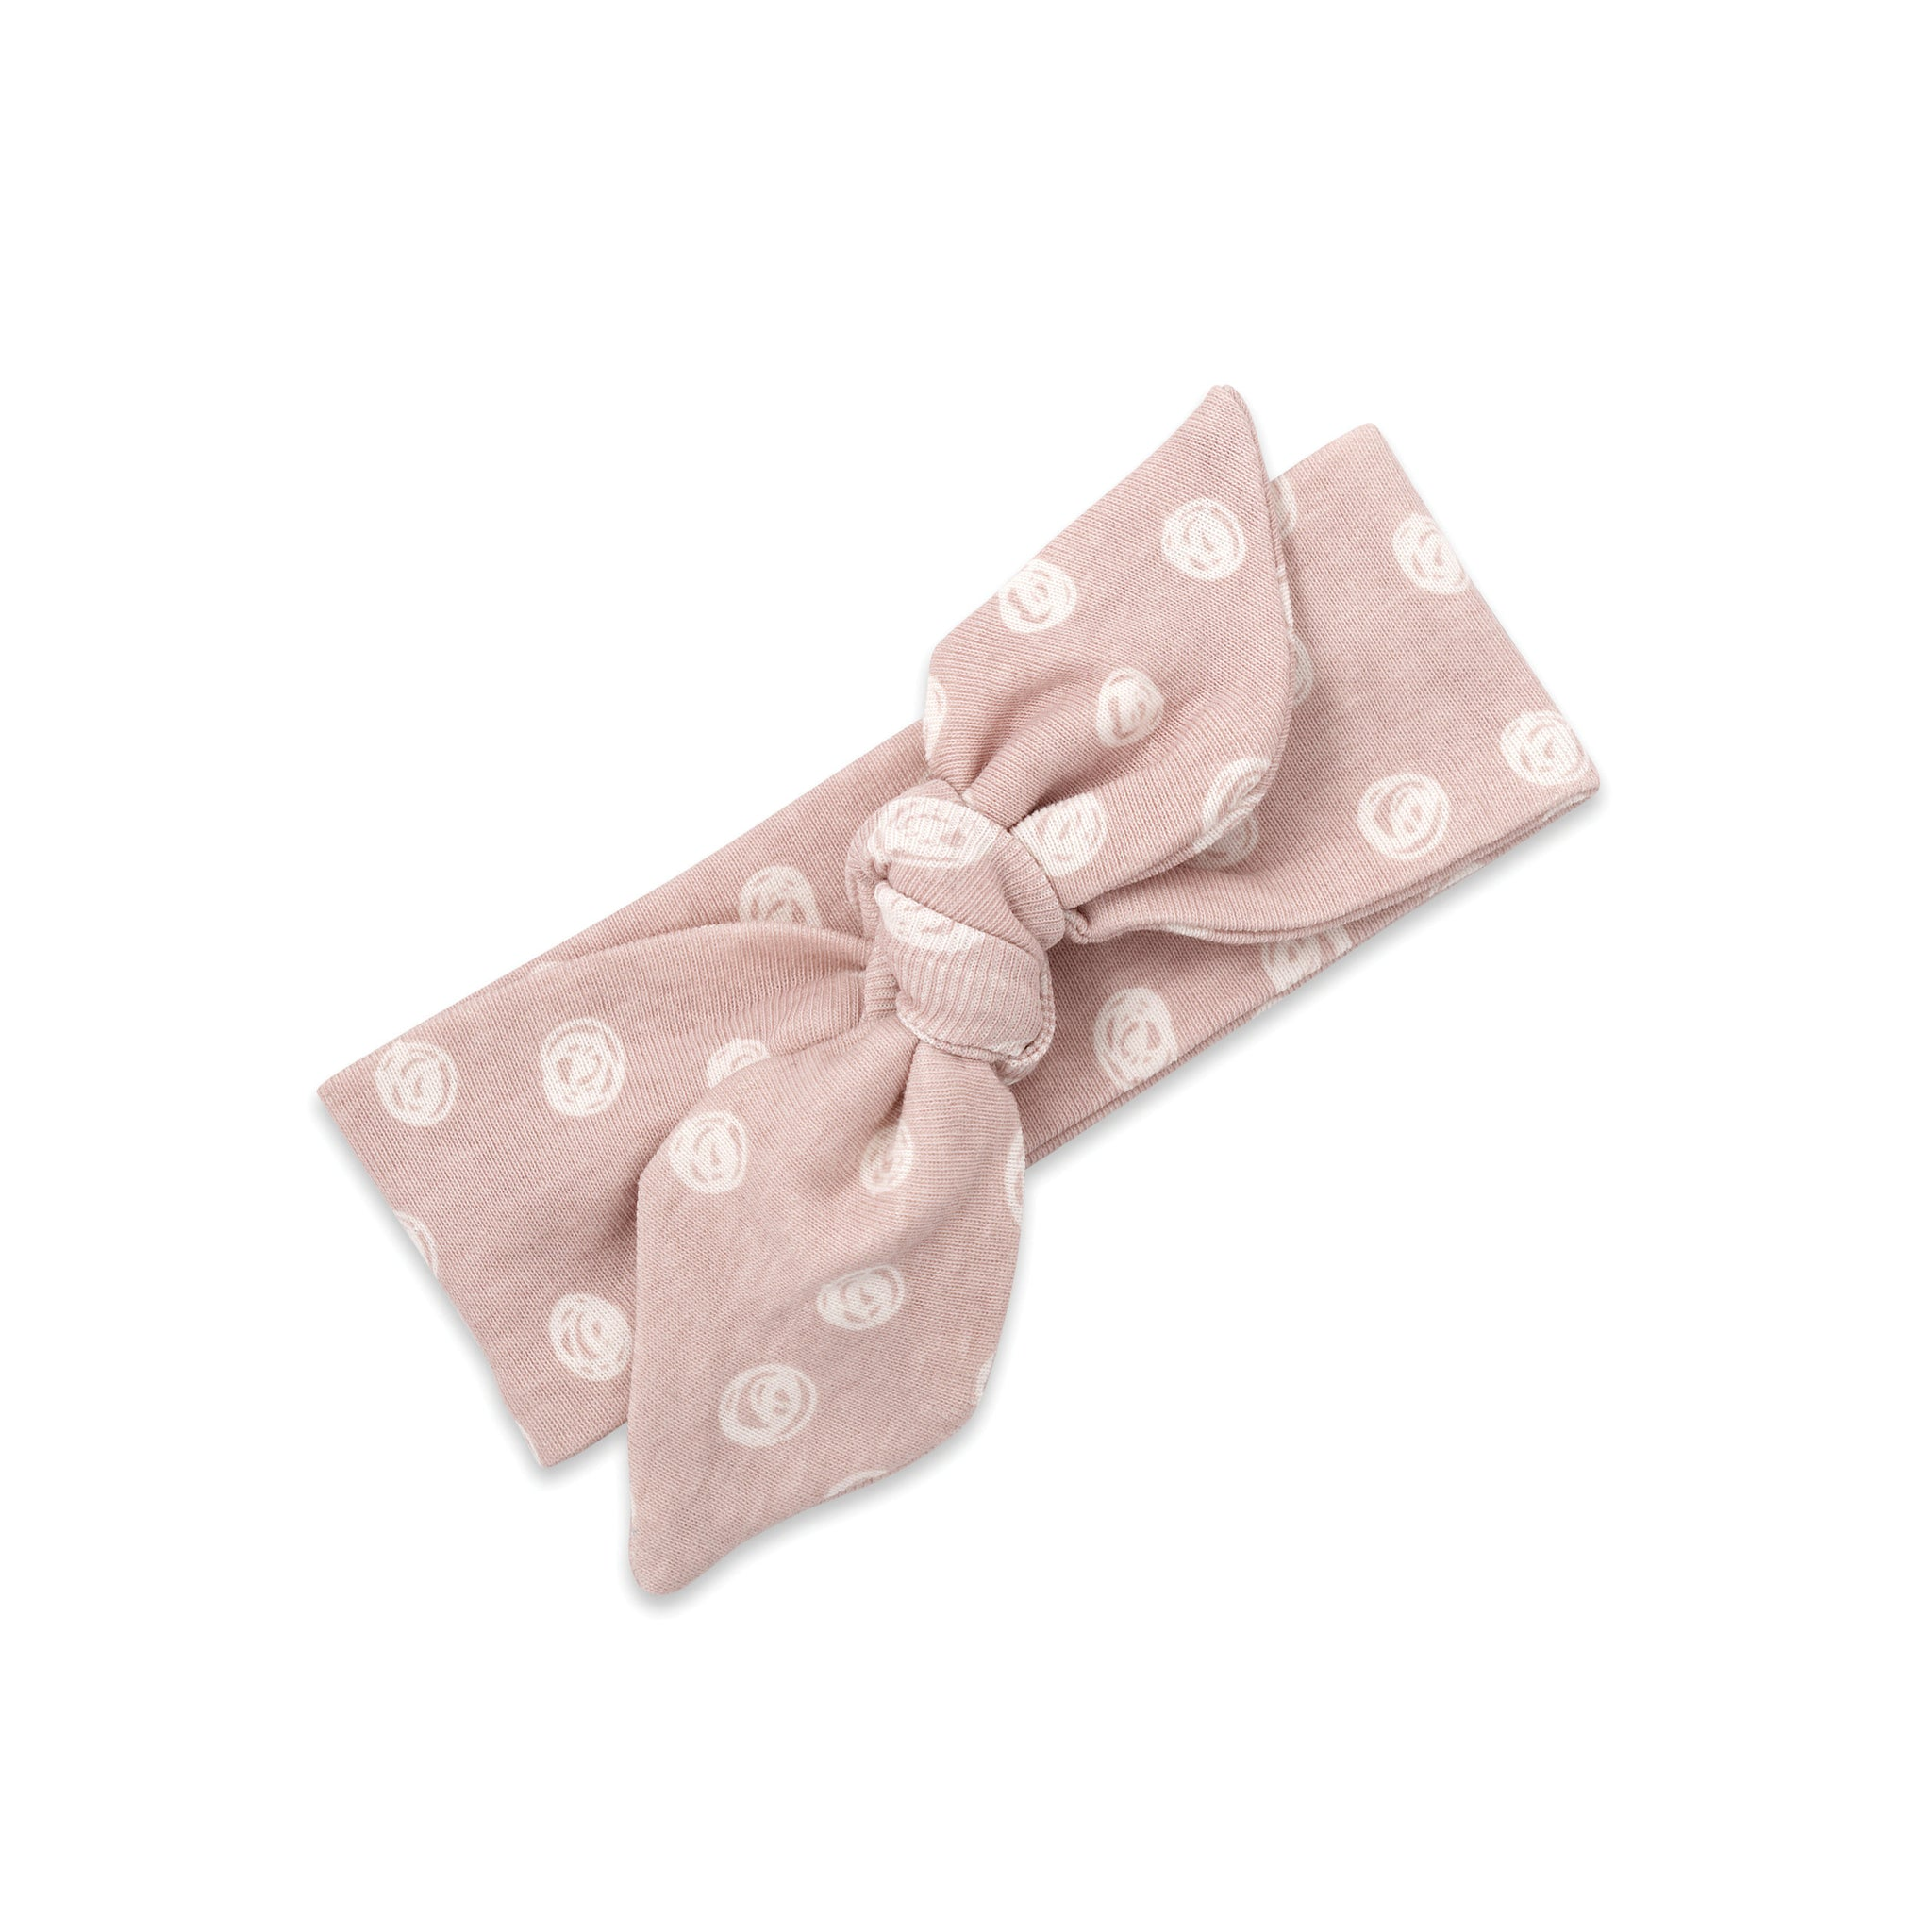 Blush Swirl Headband